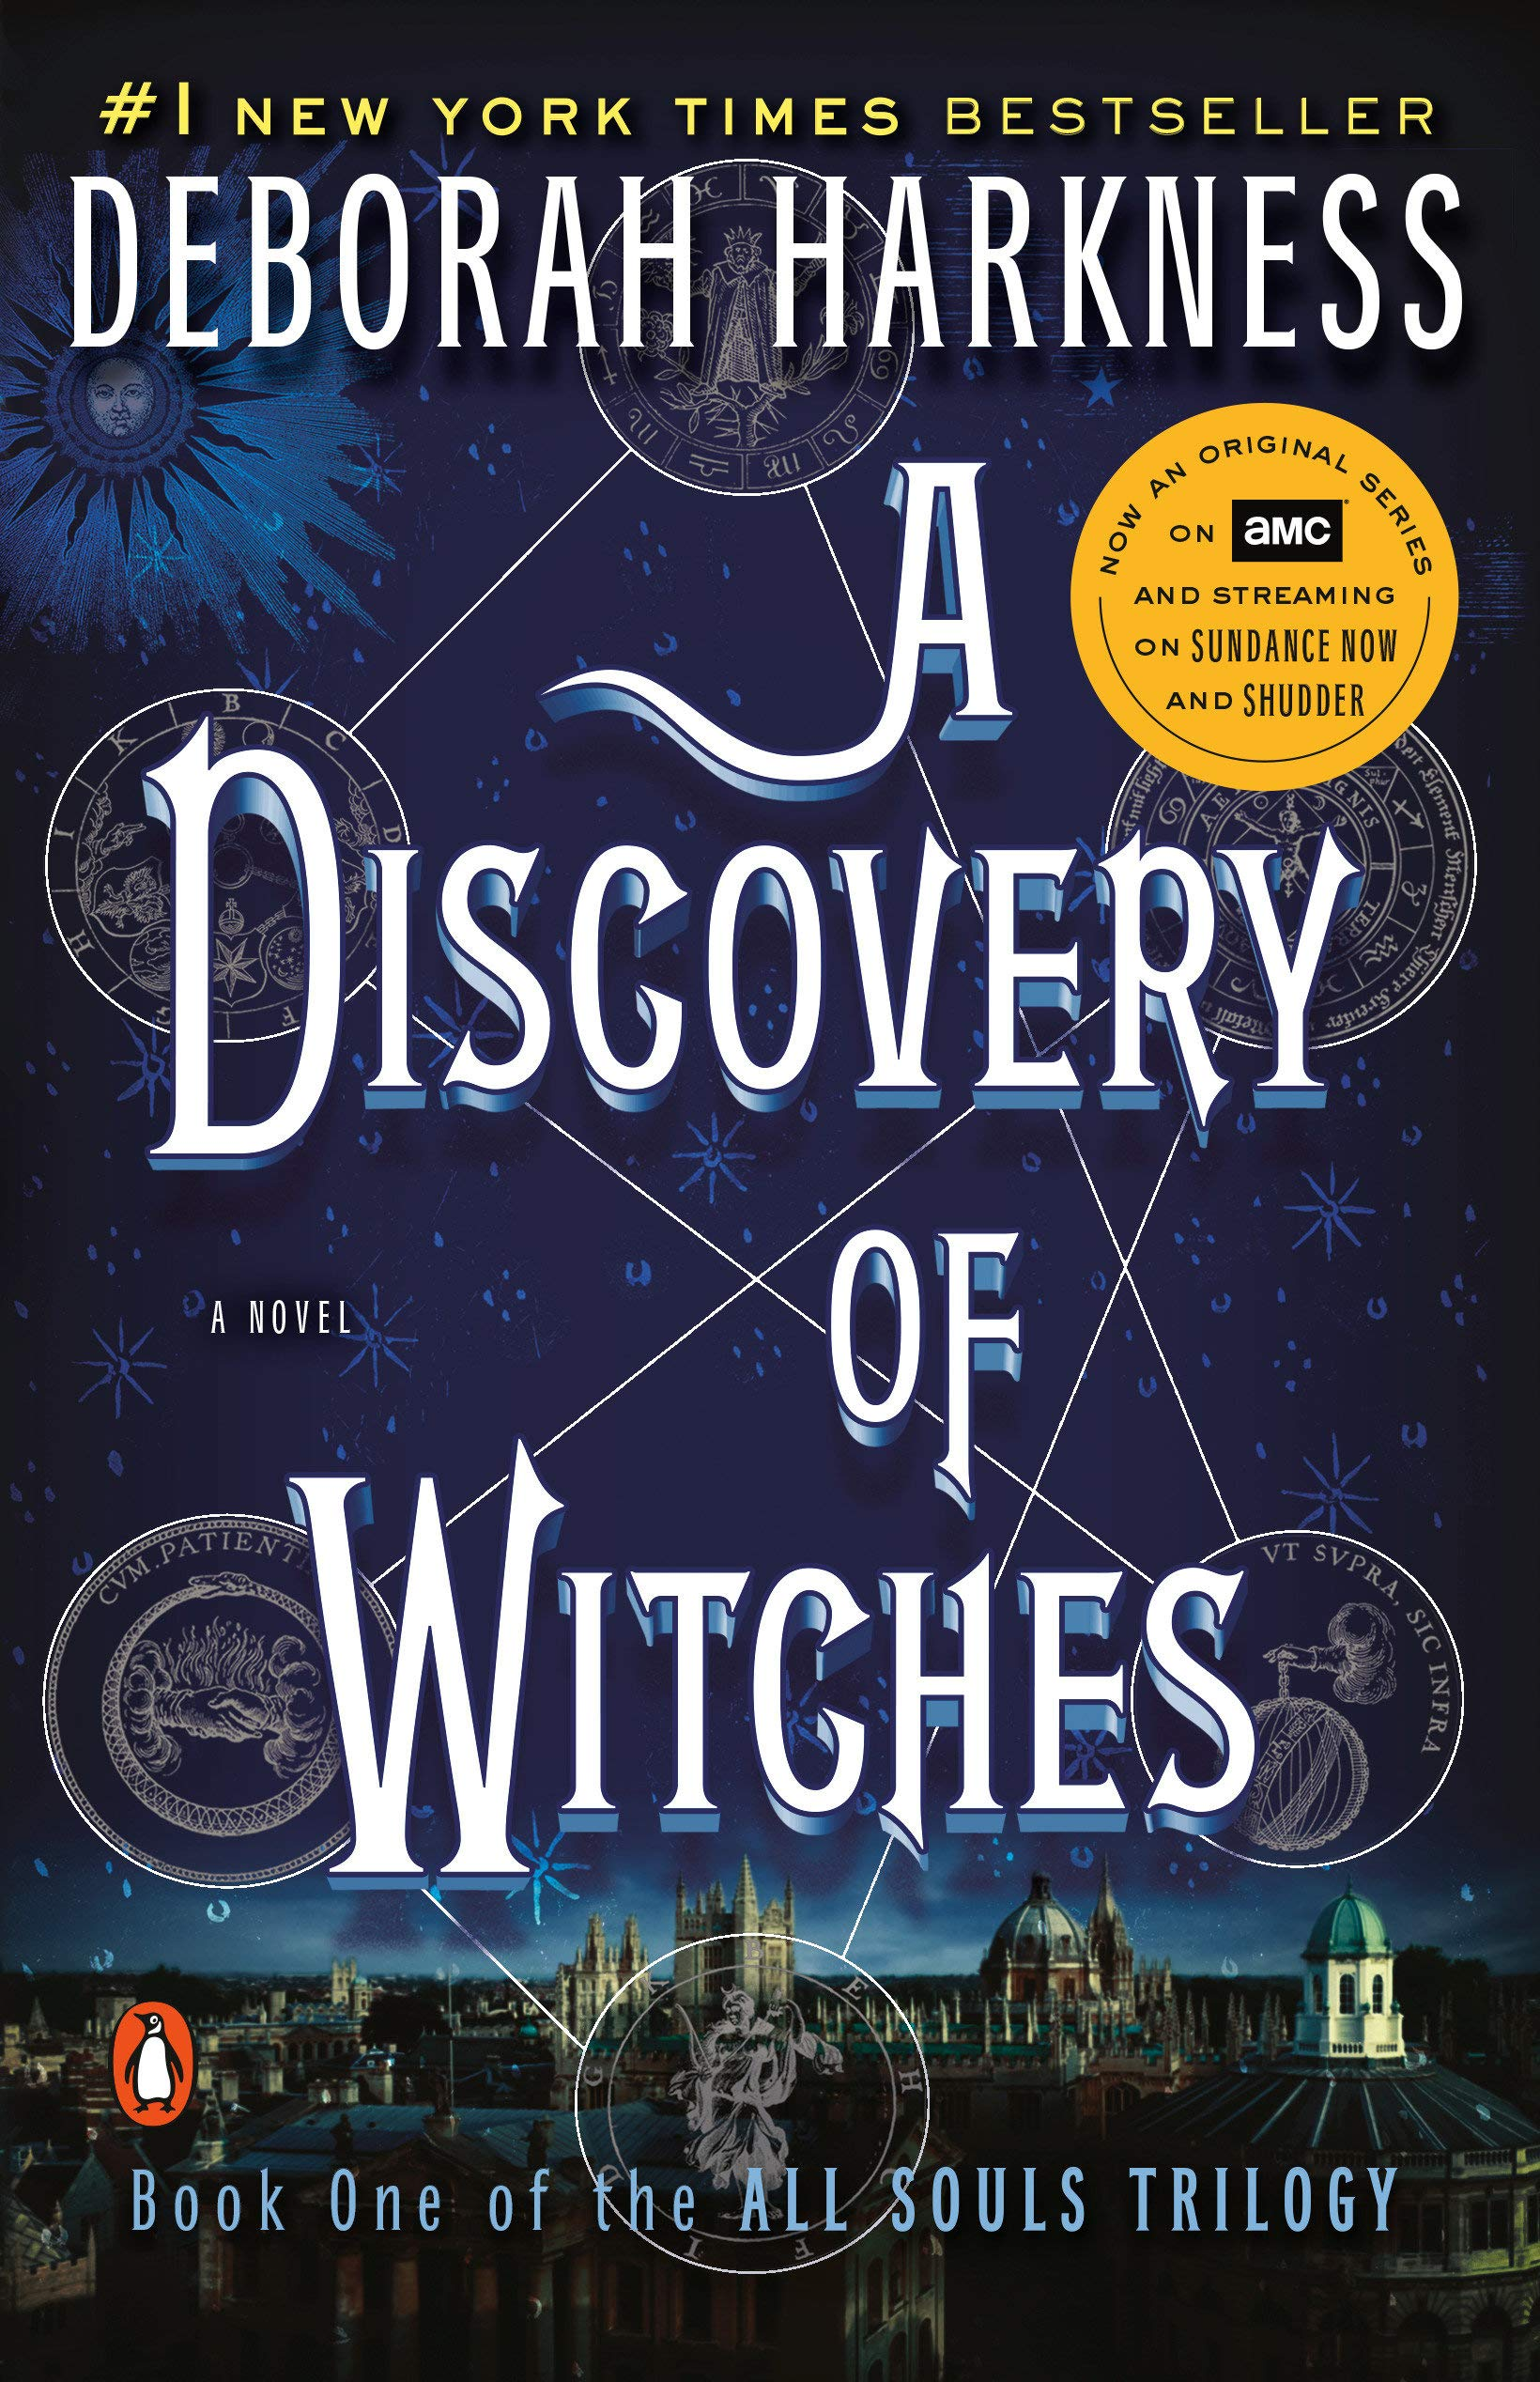 Amazon.com: A Discovery of Witches (All Souls Series) (9780143119685):  Harkness, Deborah: Books